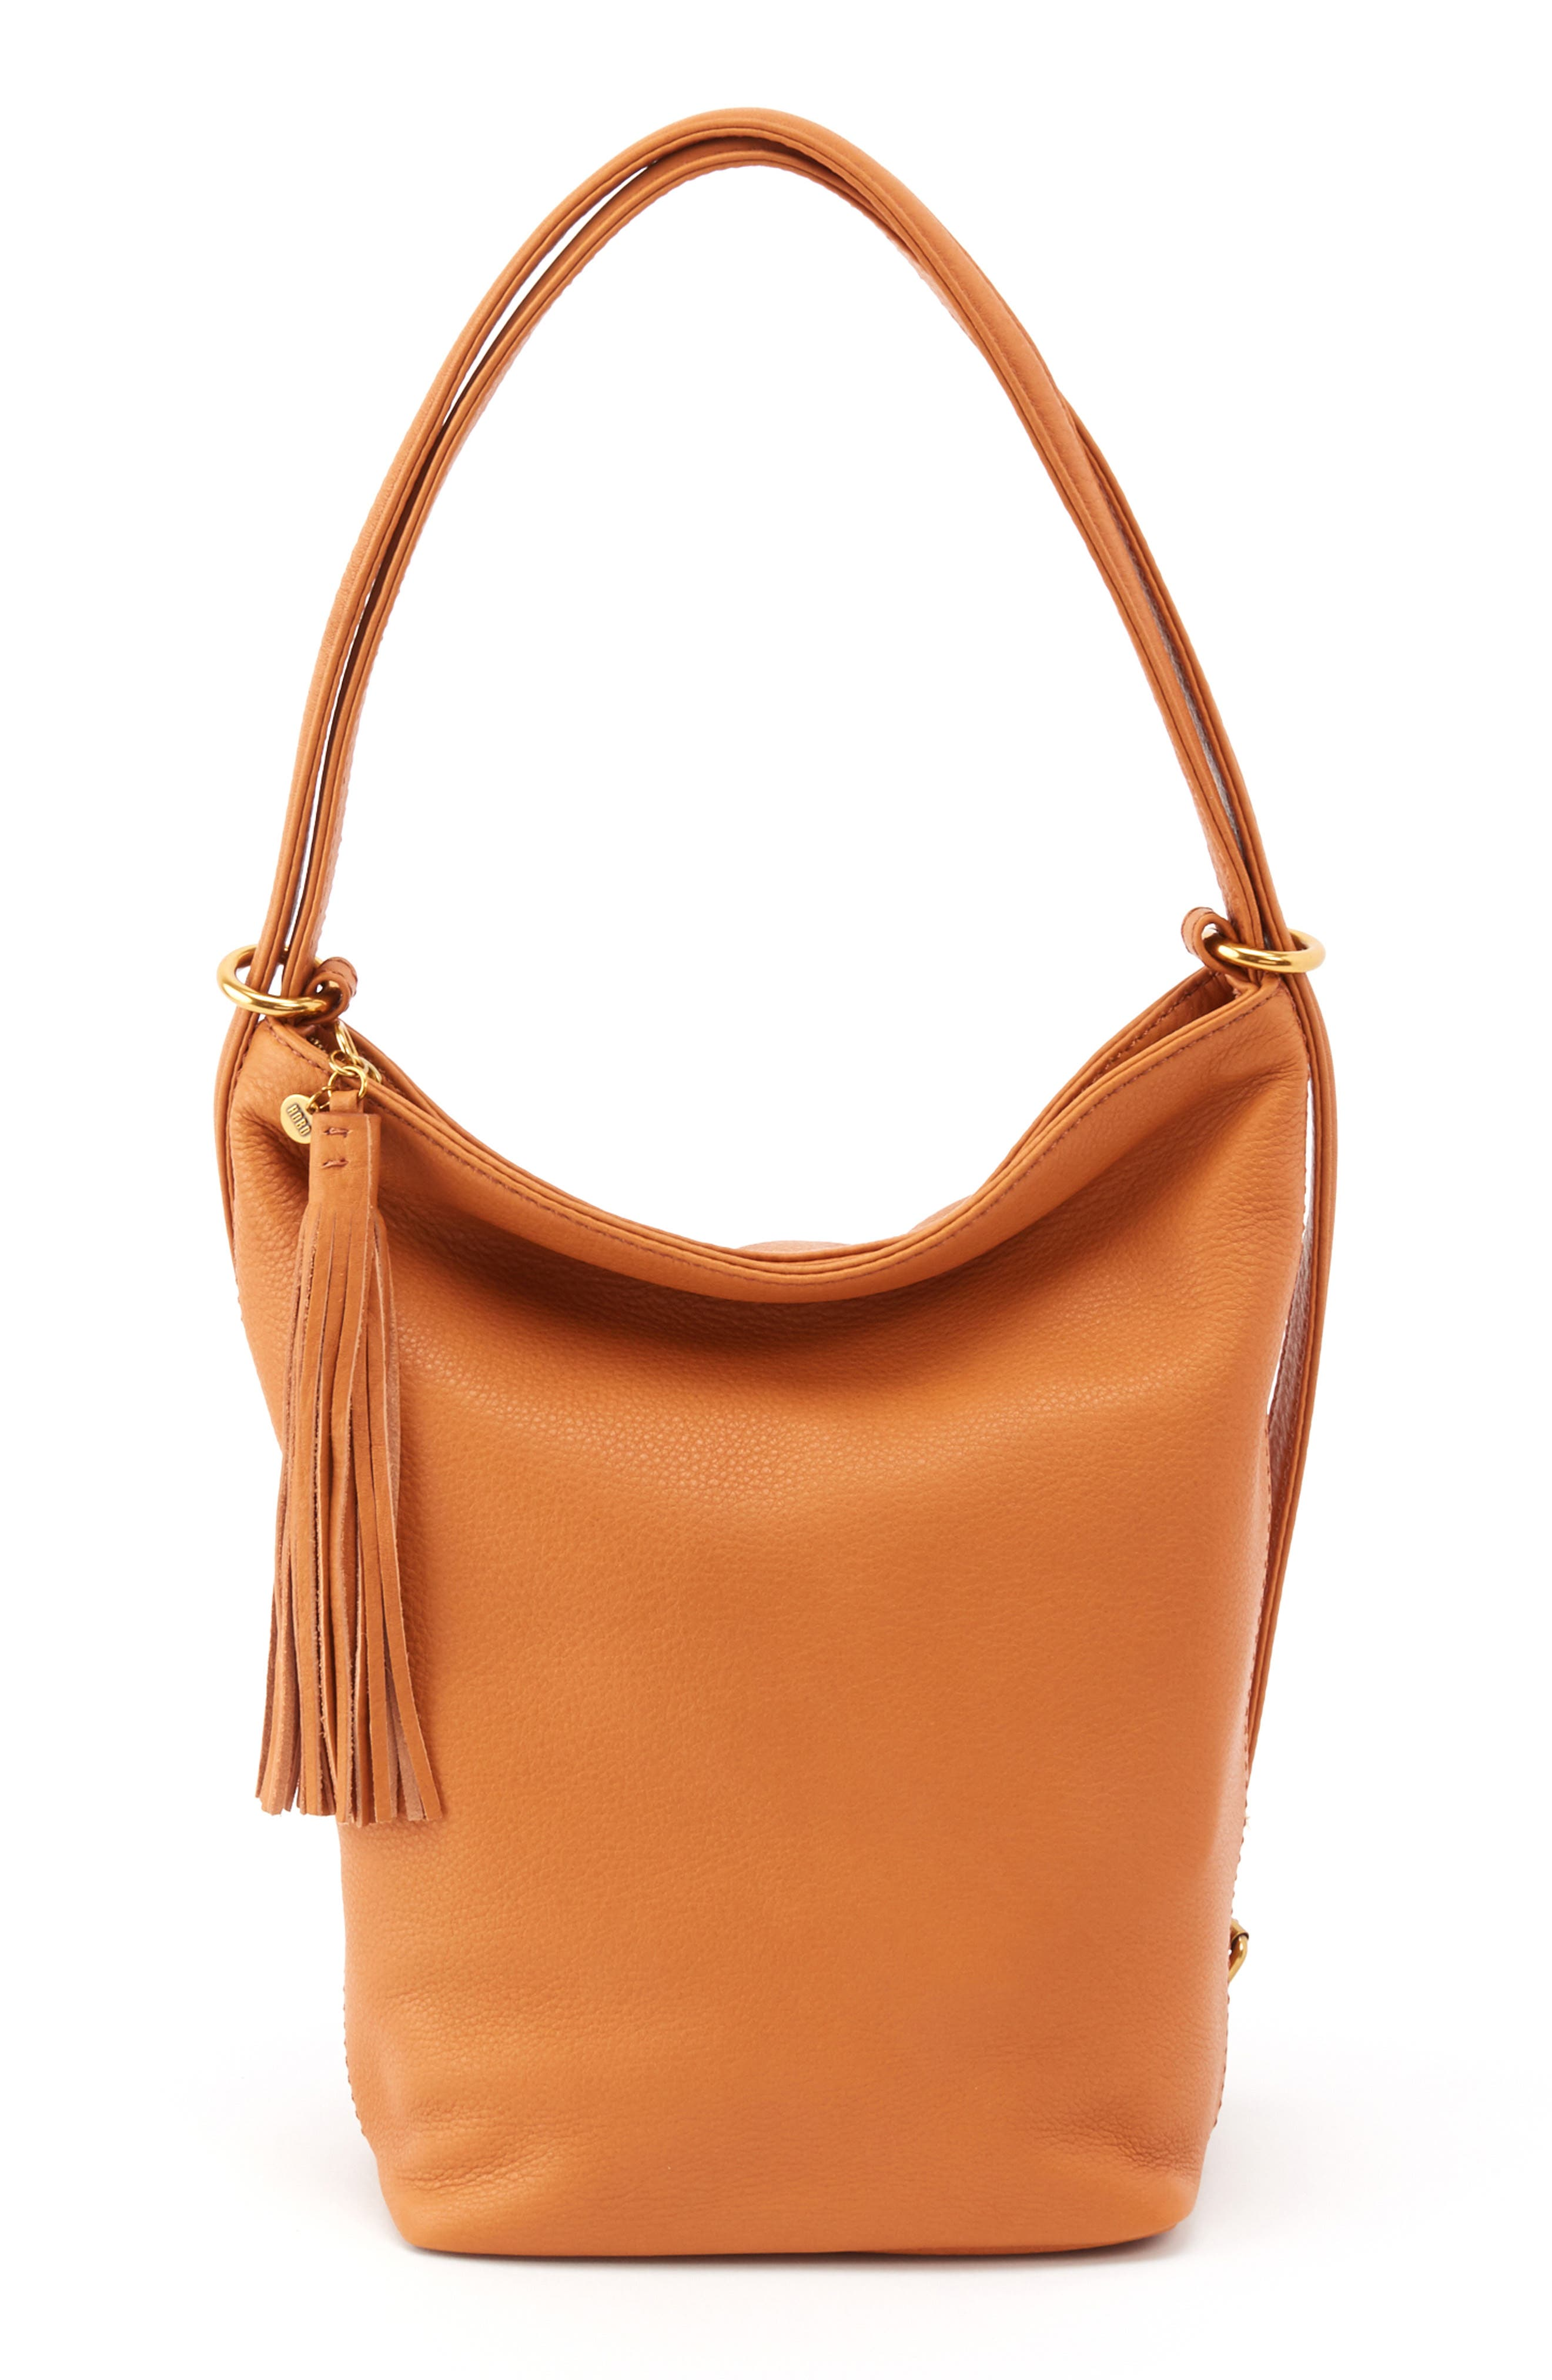 'Blaze' Convertible Leather Shoulder Bag,                             Main thumbnail 1, color,                             WHISKEY